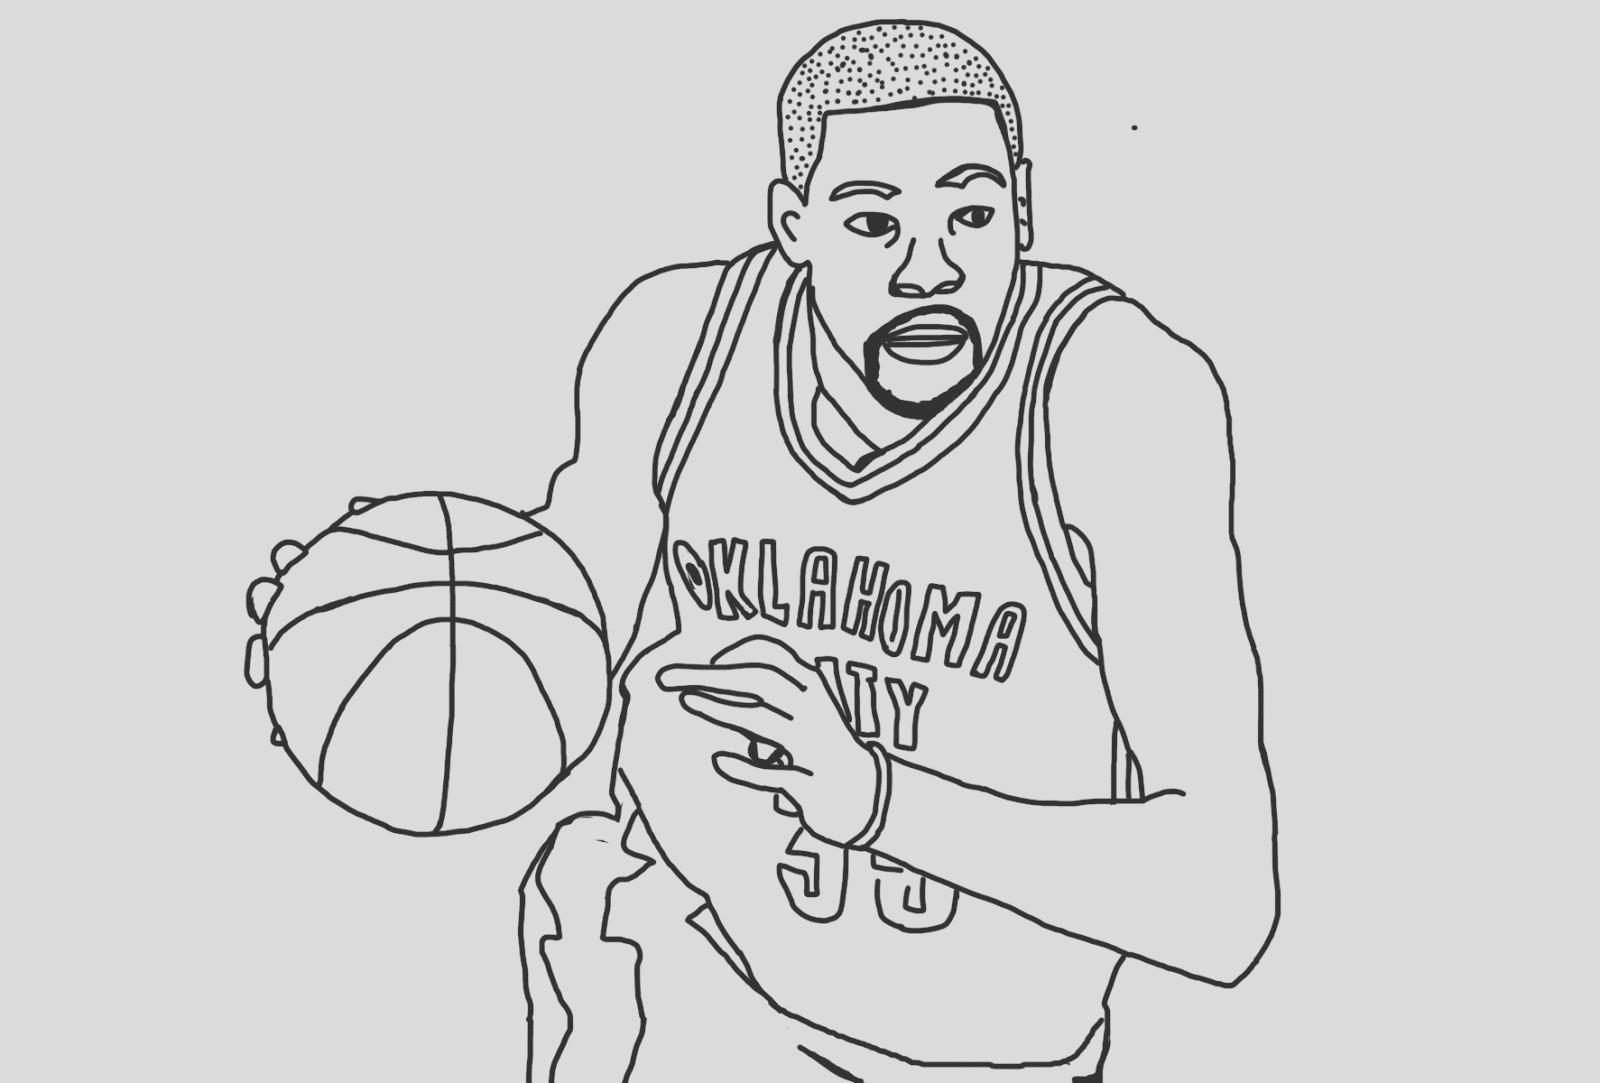 kyrie irving drawing pencil